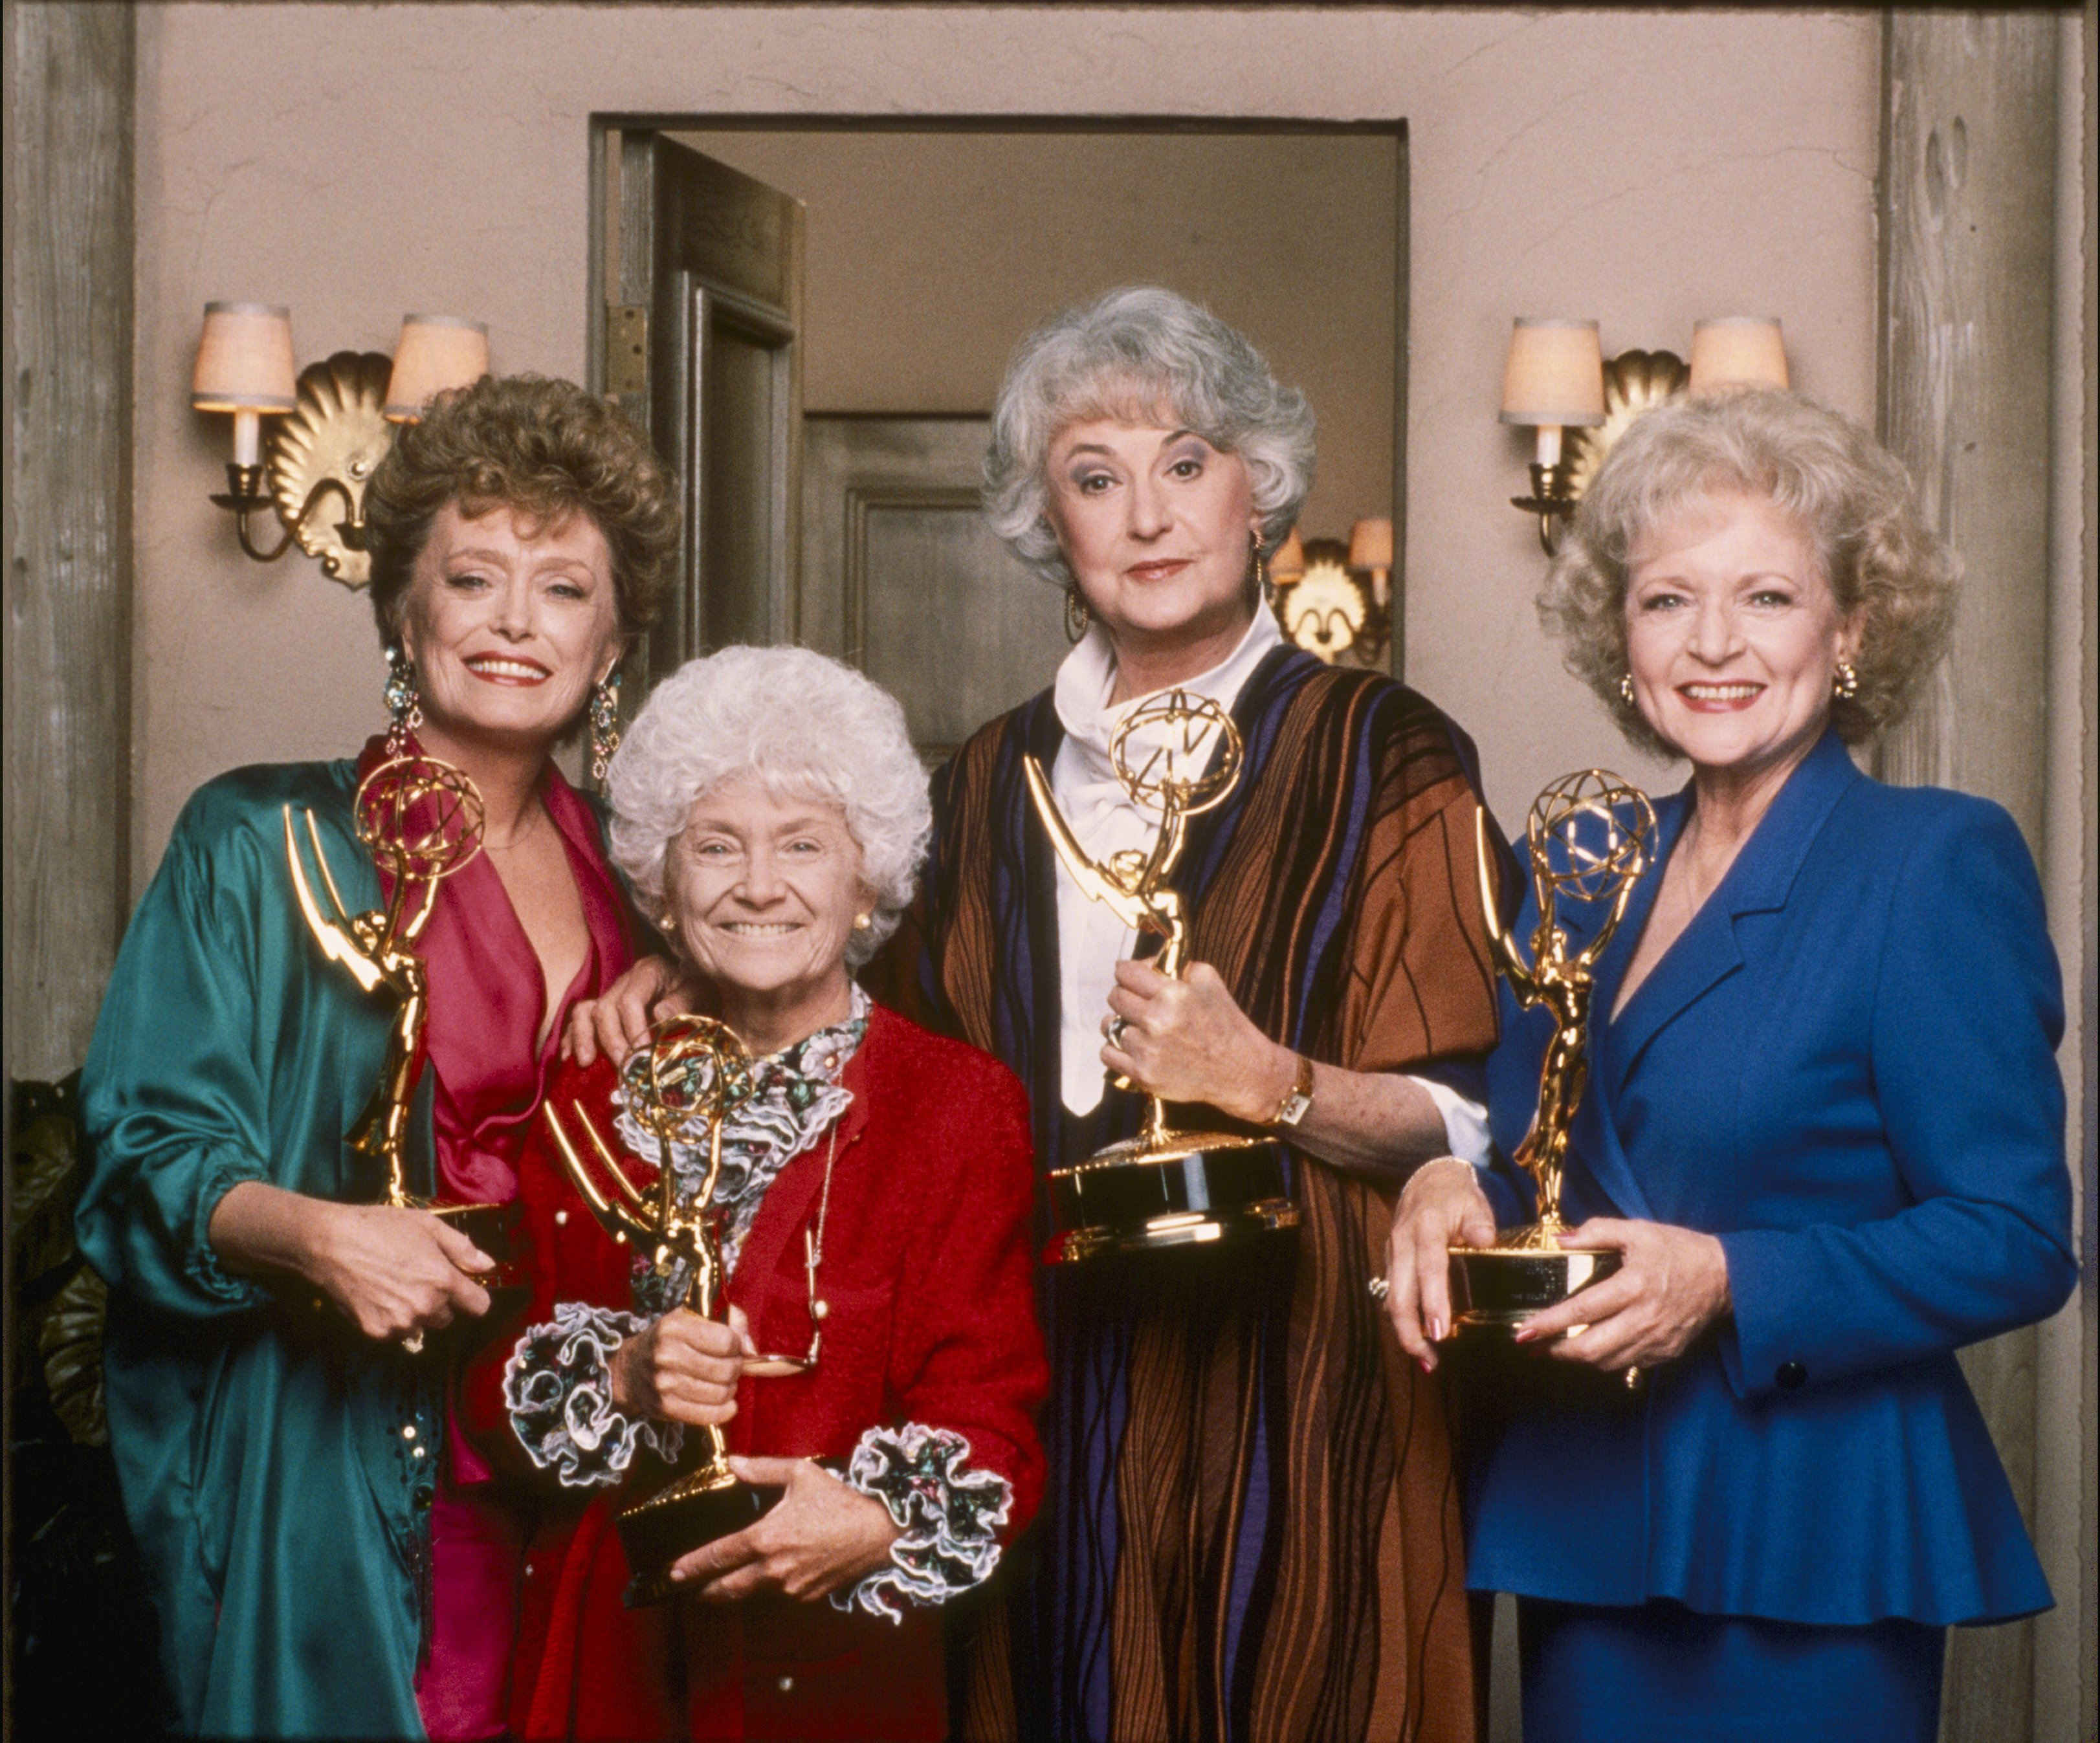 Rue McClanahan, Estelle Getty, Bea Arthur, and Betty White with their Emmys for Outstanding Lead Actress in a Comedy Series | Photo: Getty Images